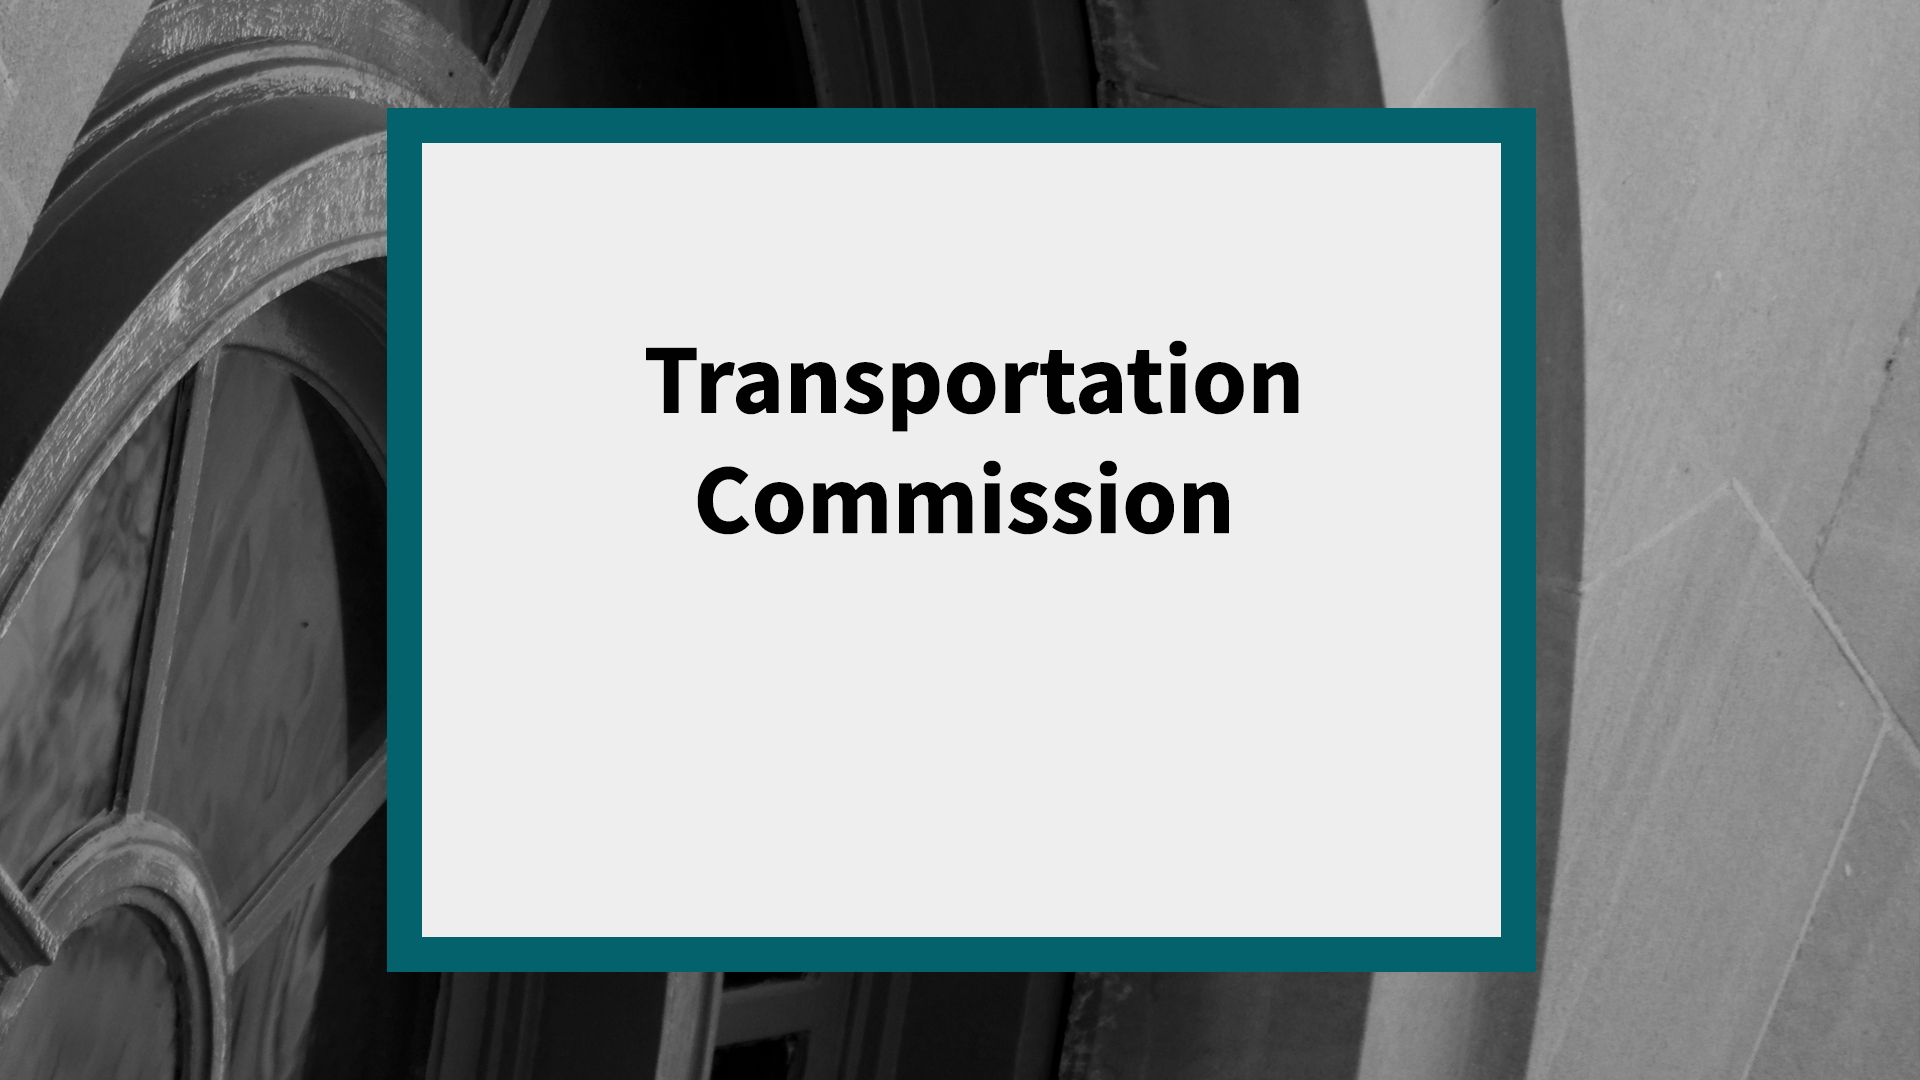 Transportation Commission